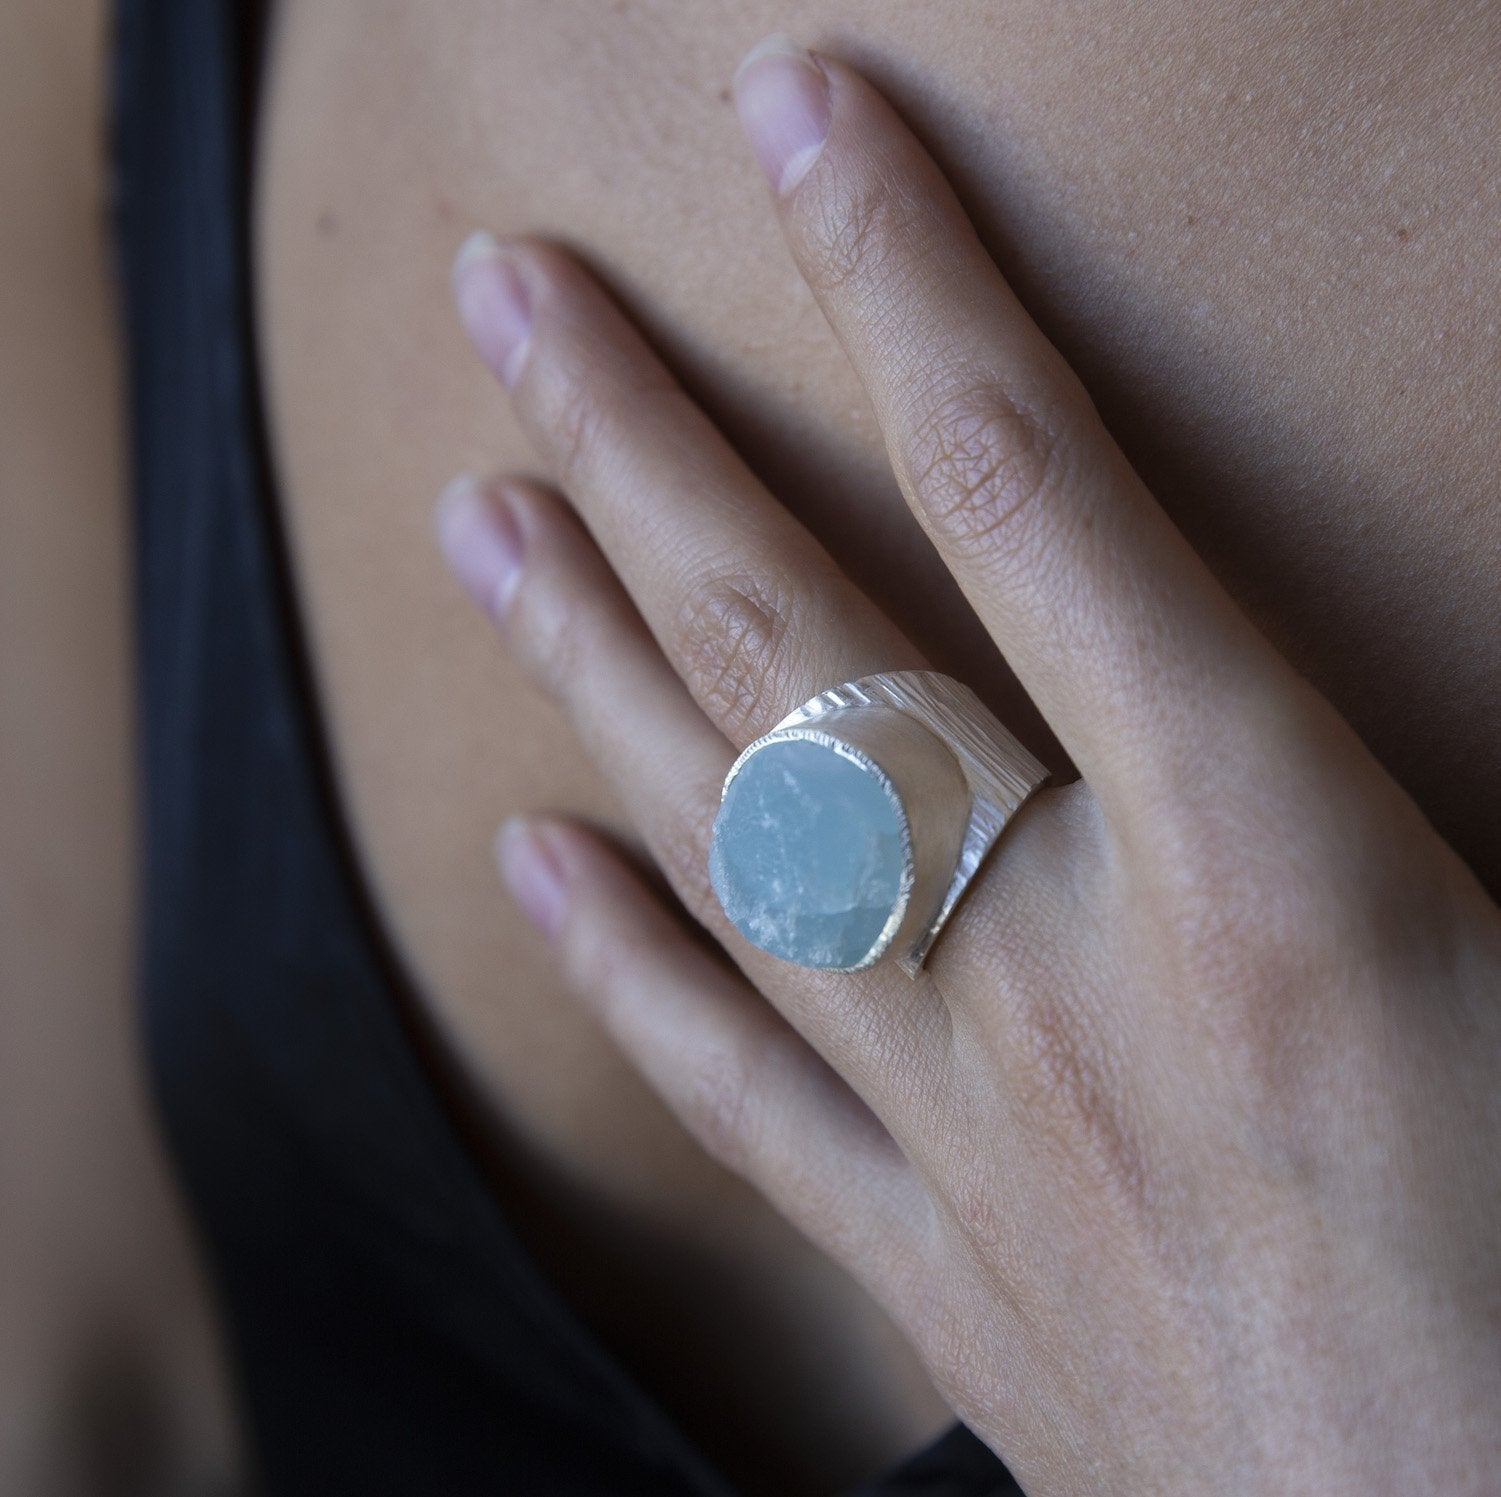 'Anchor' Aquamarine Macho Ring - Large Stone